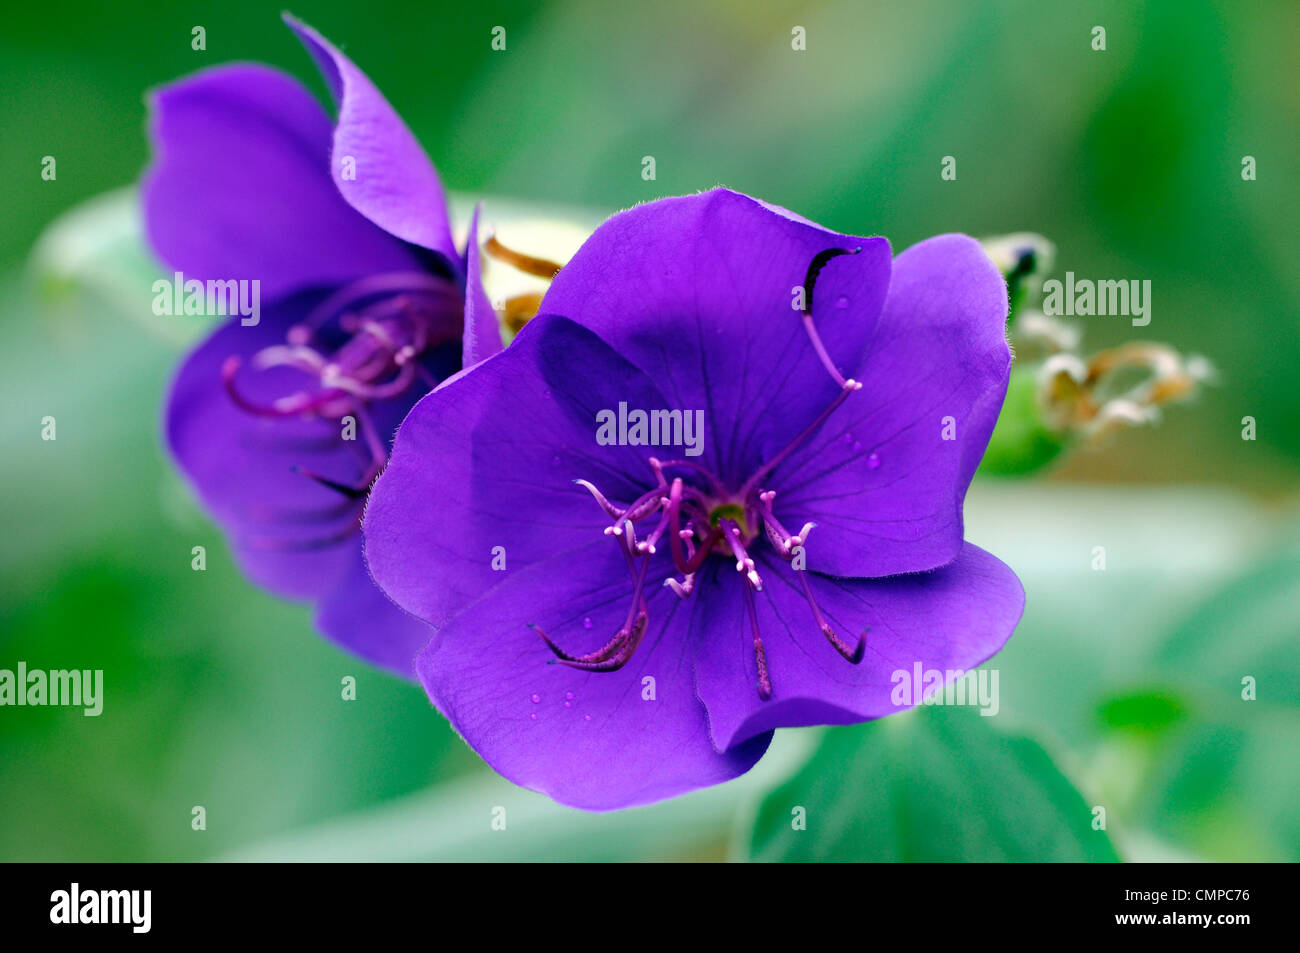 tibouchina urvilleana agm princess flower glory bush august autumn close ups colors colours fall flowering flowers - Stock Image